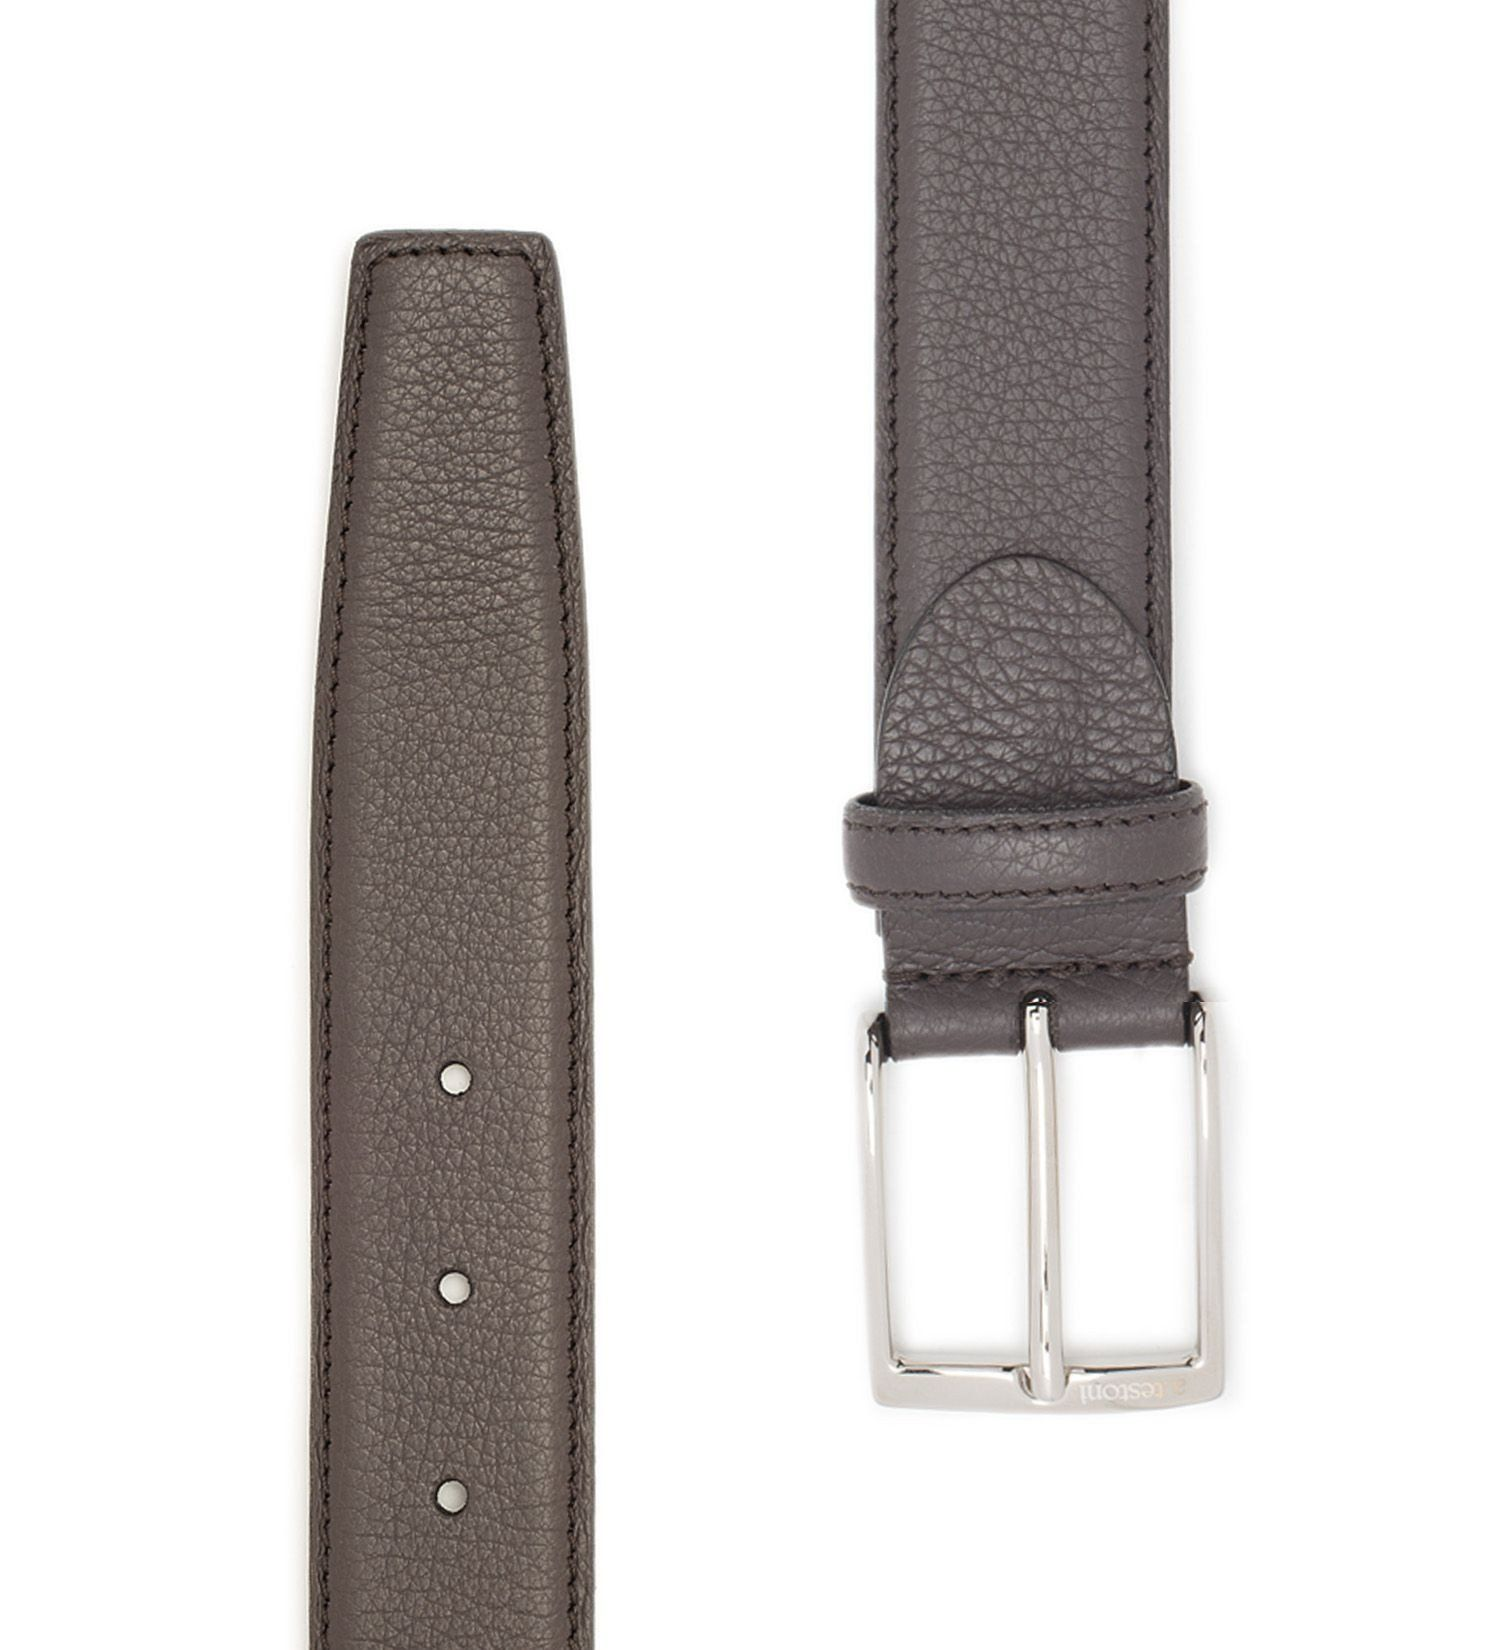 LEATHER BELT,BELT,A.TESTONI, | GentRow.com